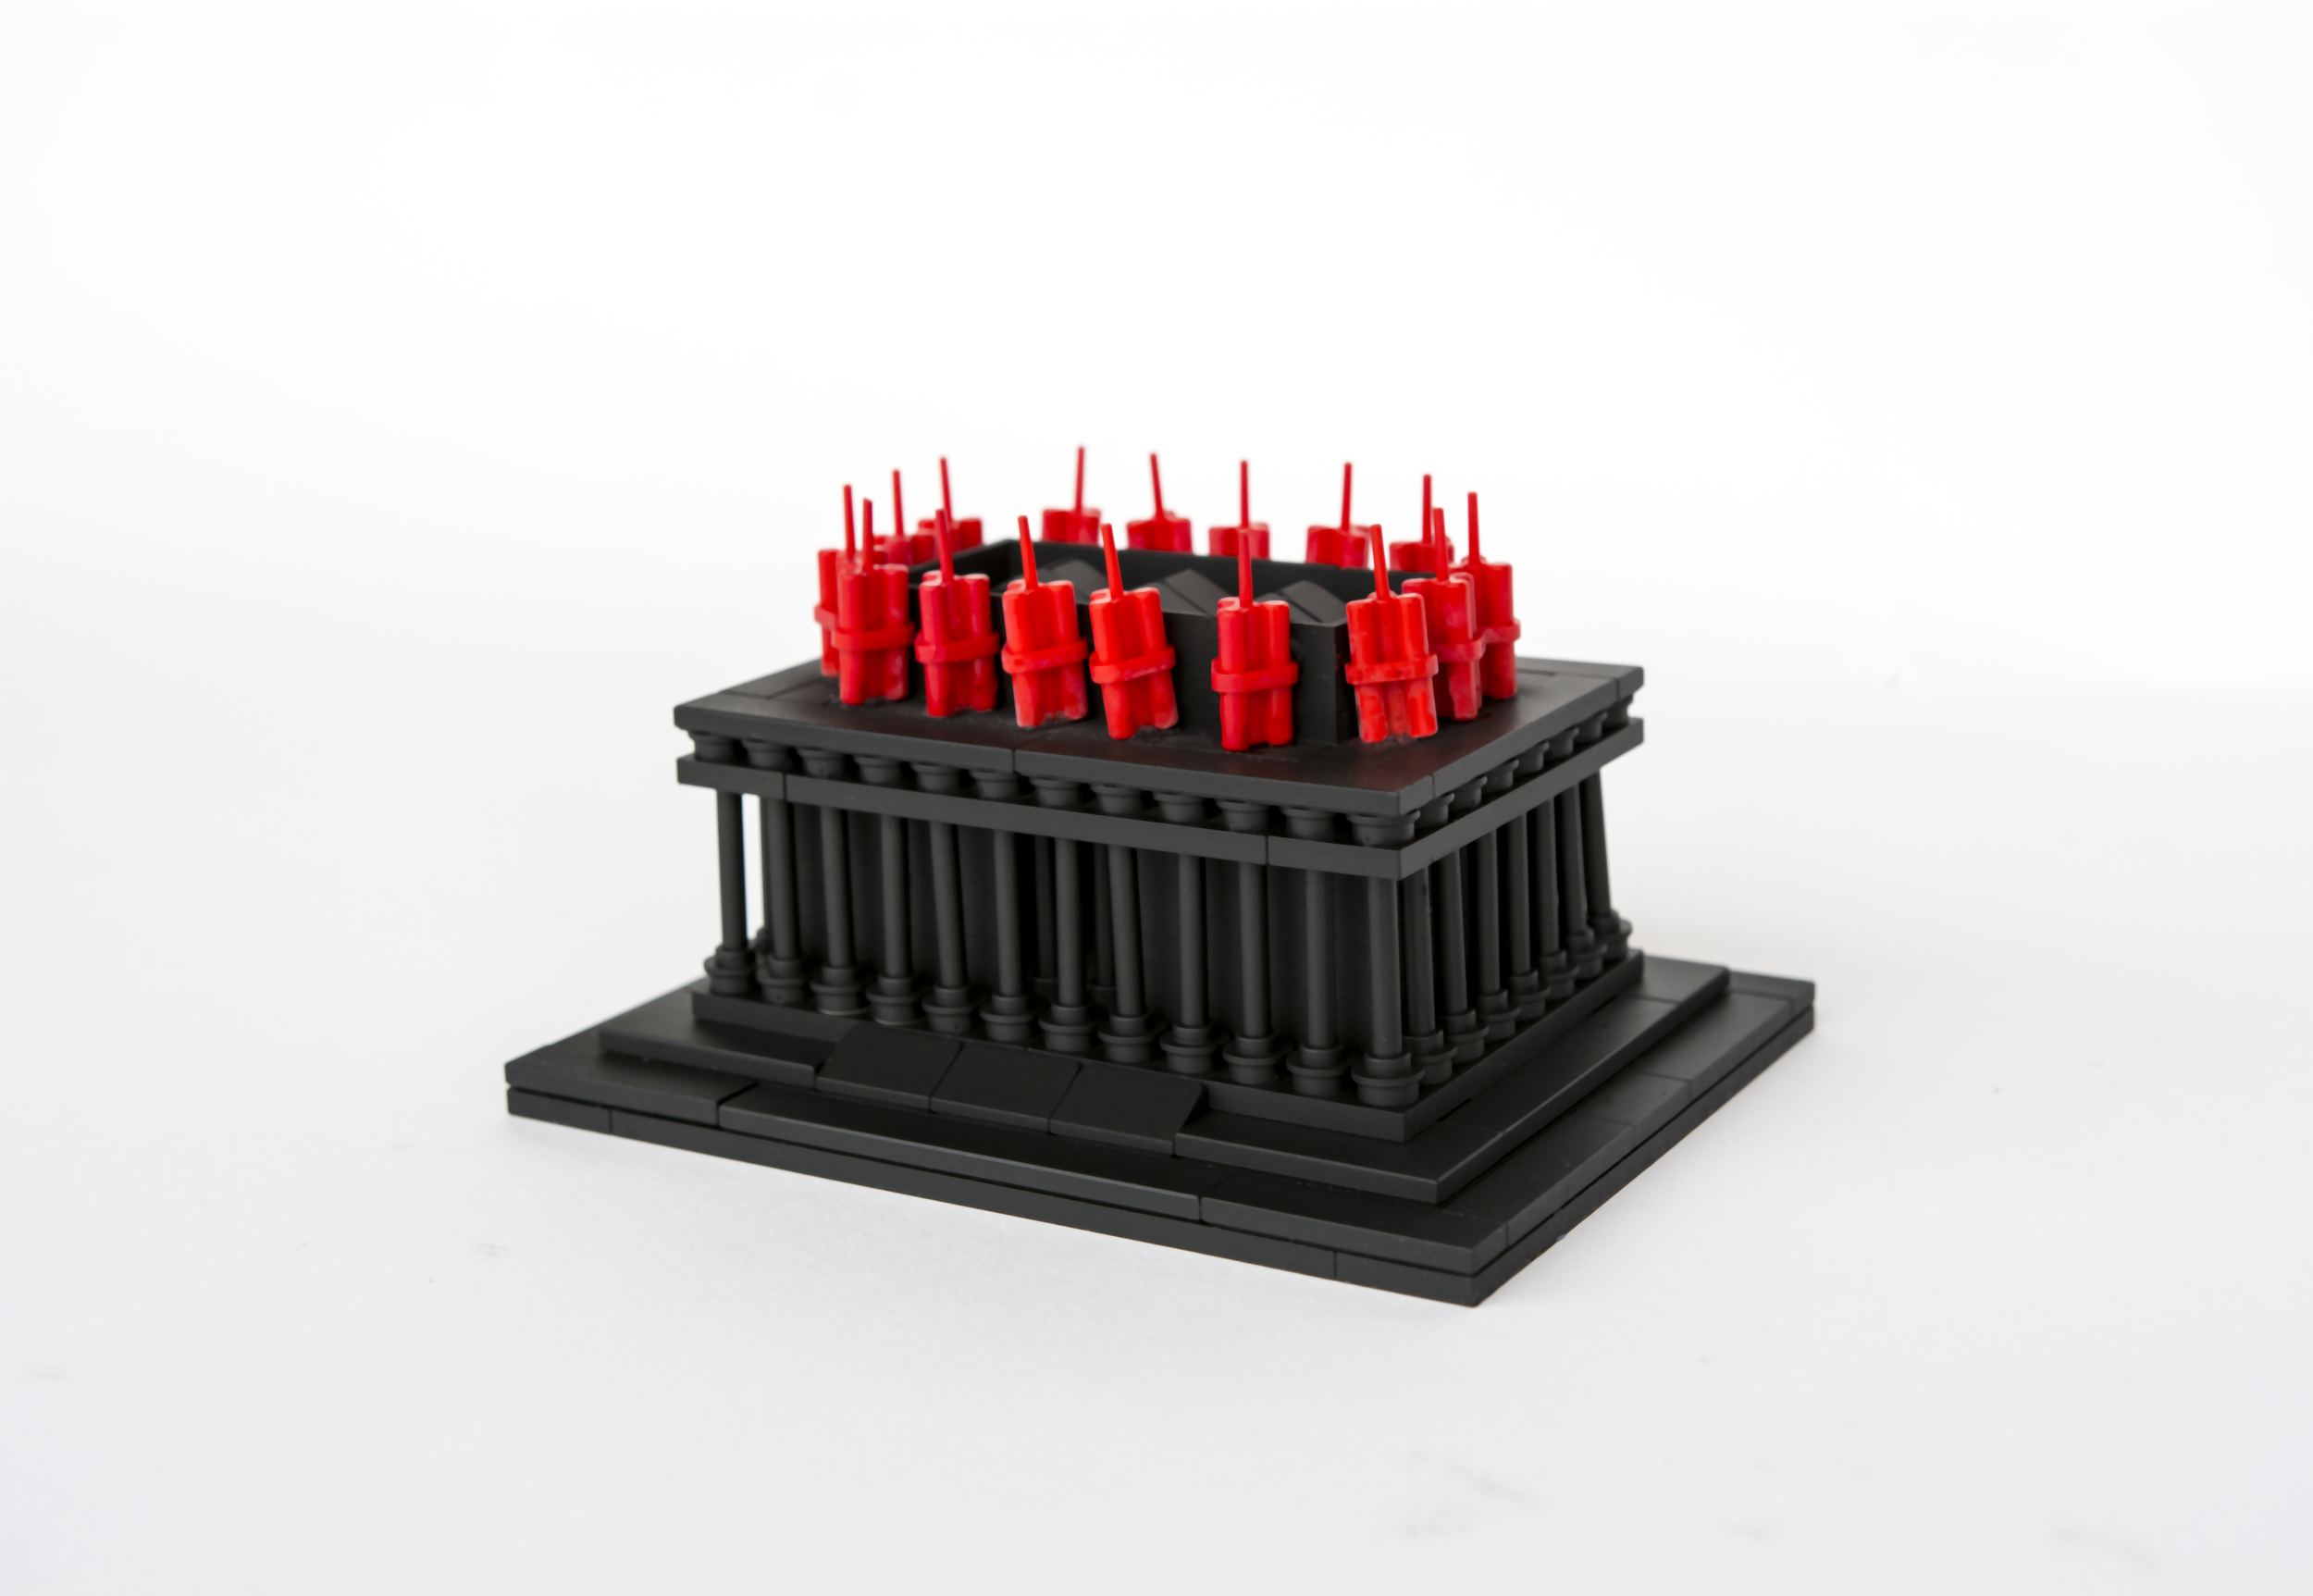 """Anti-Monuments for Counter Histories (09/05/1970) , painted lego pieces and plastic dynamite,2"""" (6cm) tall, 4"""" (12cm) wide and 3"""" (9cm) deep,2015"""